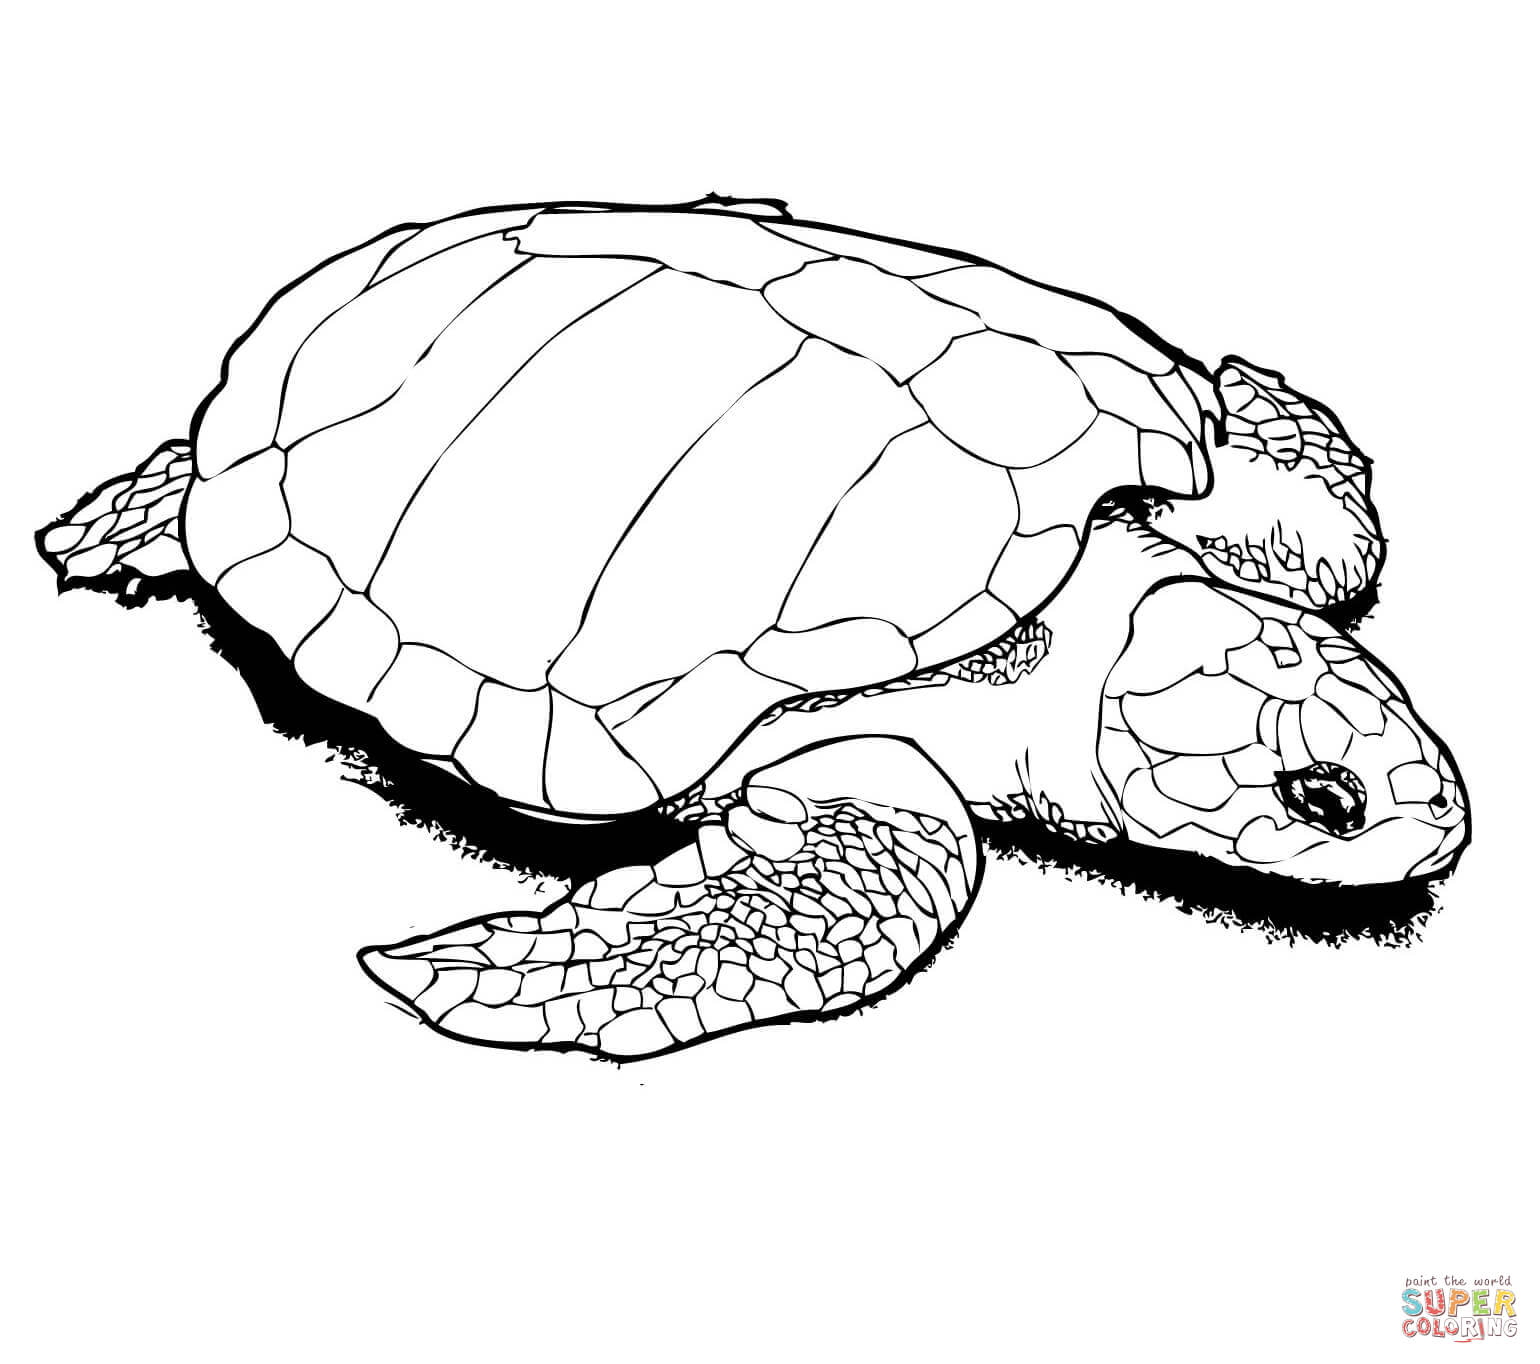 images of turtles to color free turtle coloring pages for adults printable to images color of to turtles